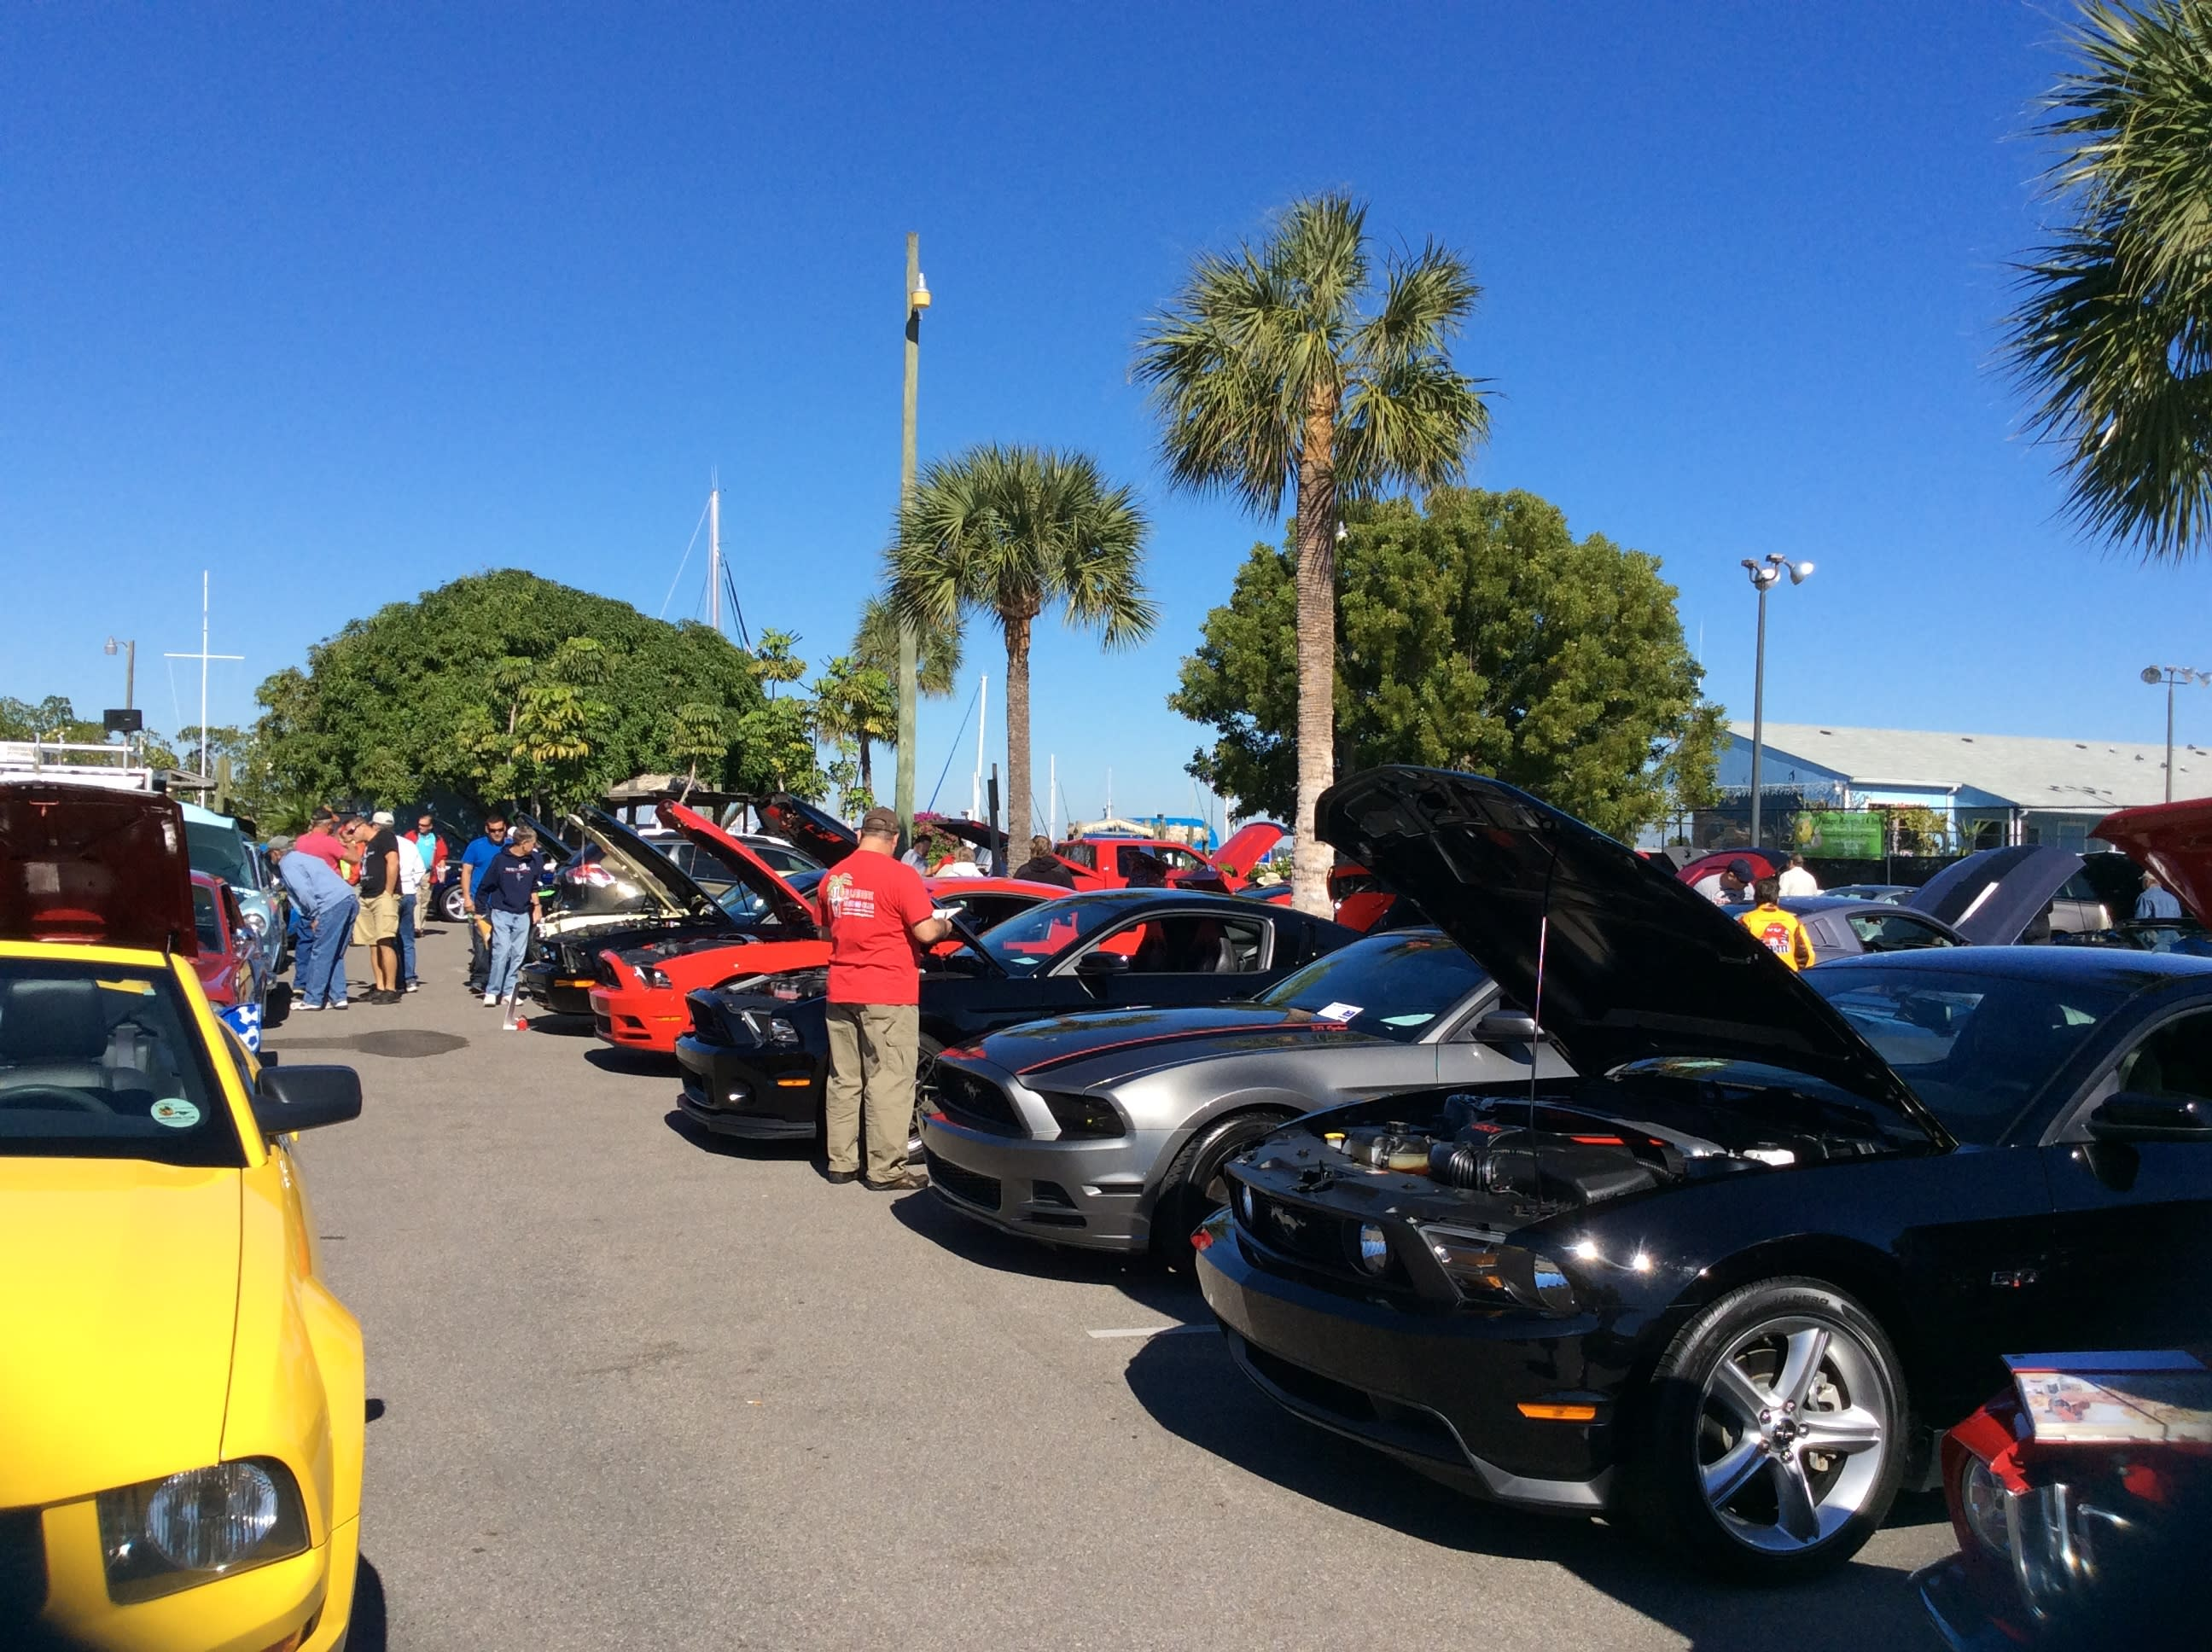 Mustang Club Of Charlotte County Car Show - Punta gorda car show 2018